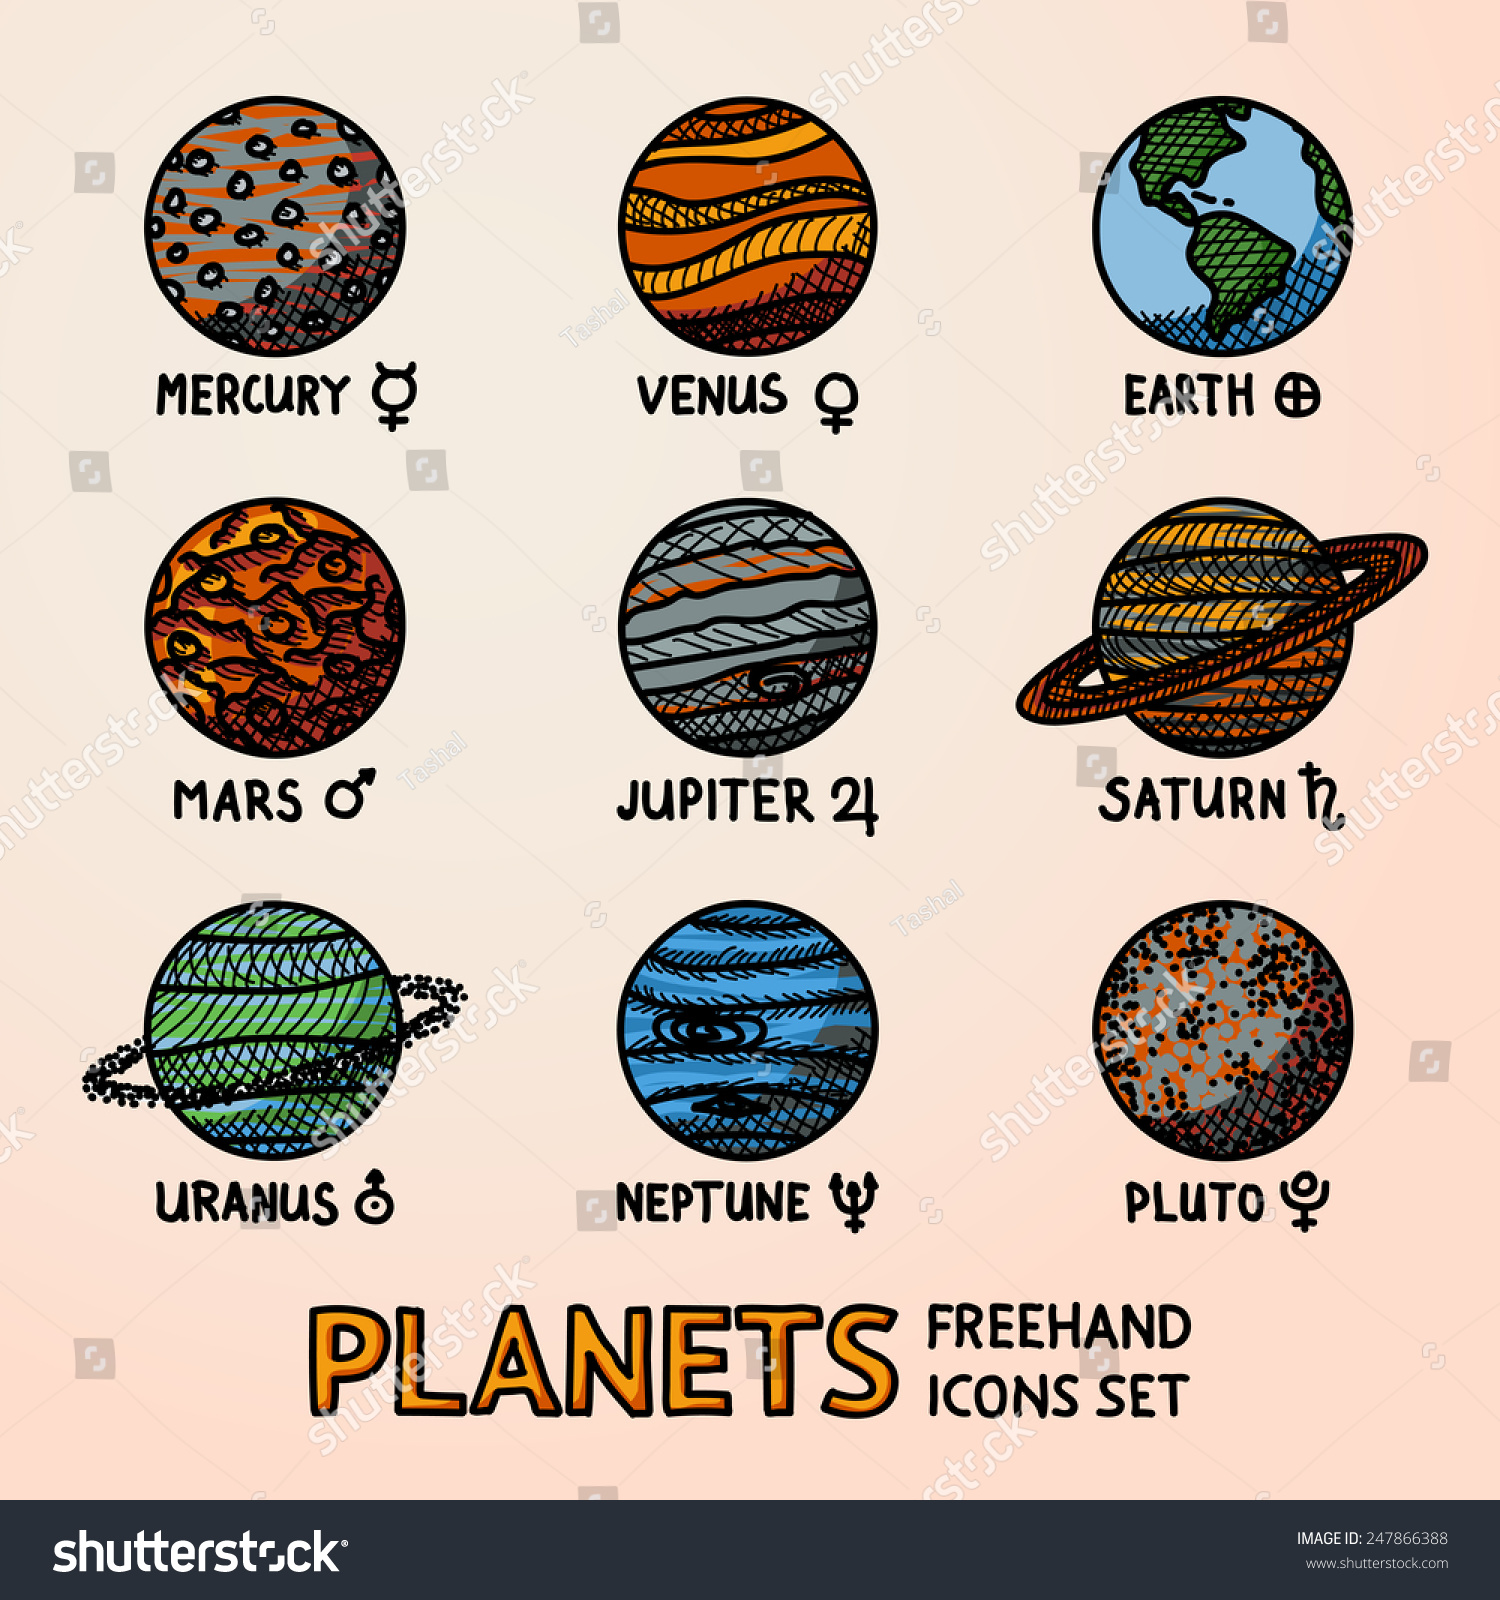 Set Of Color Hand Drawn Planet Icons With Names And ...